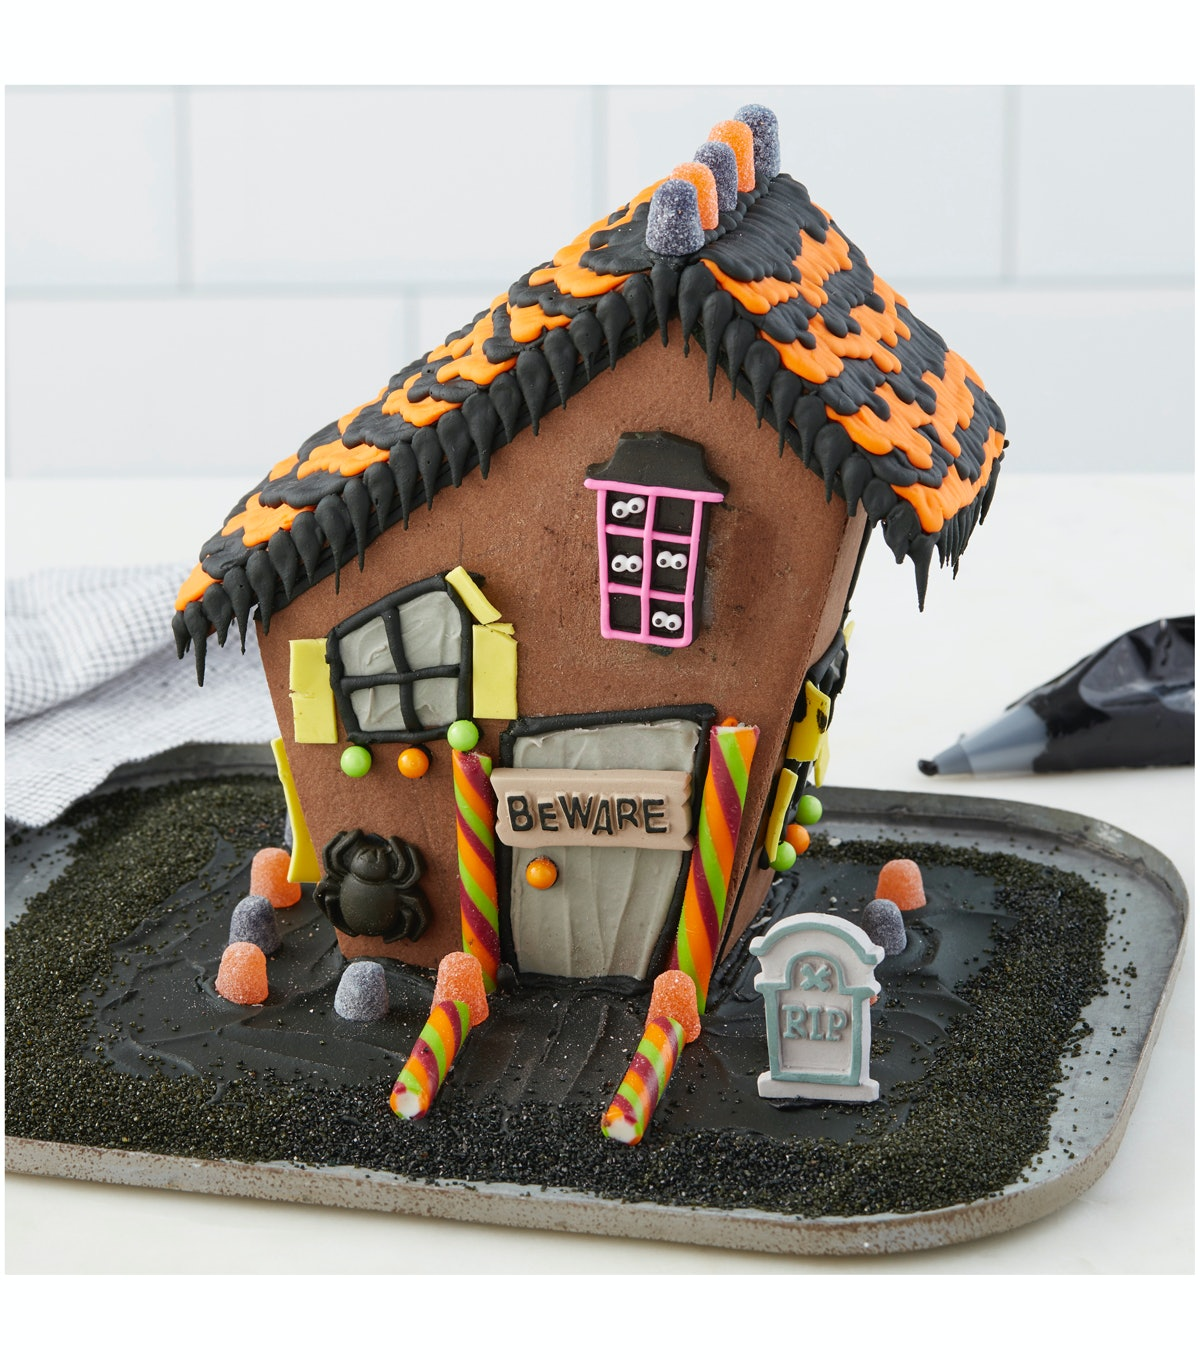 JOANN Stores' Wilton Icing Halloween Gingerbread House